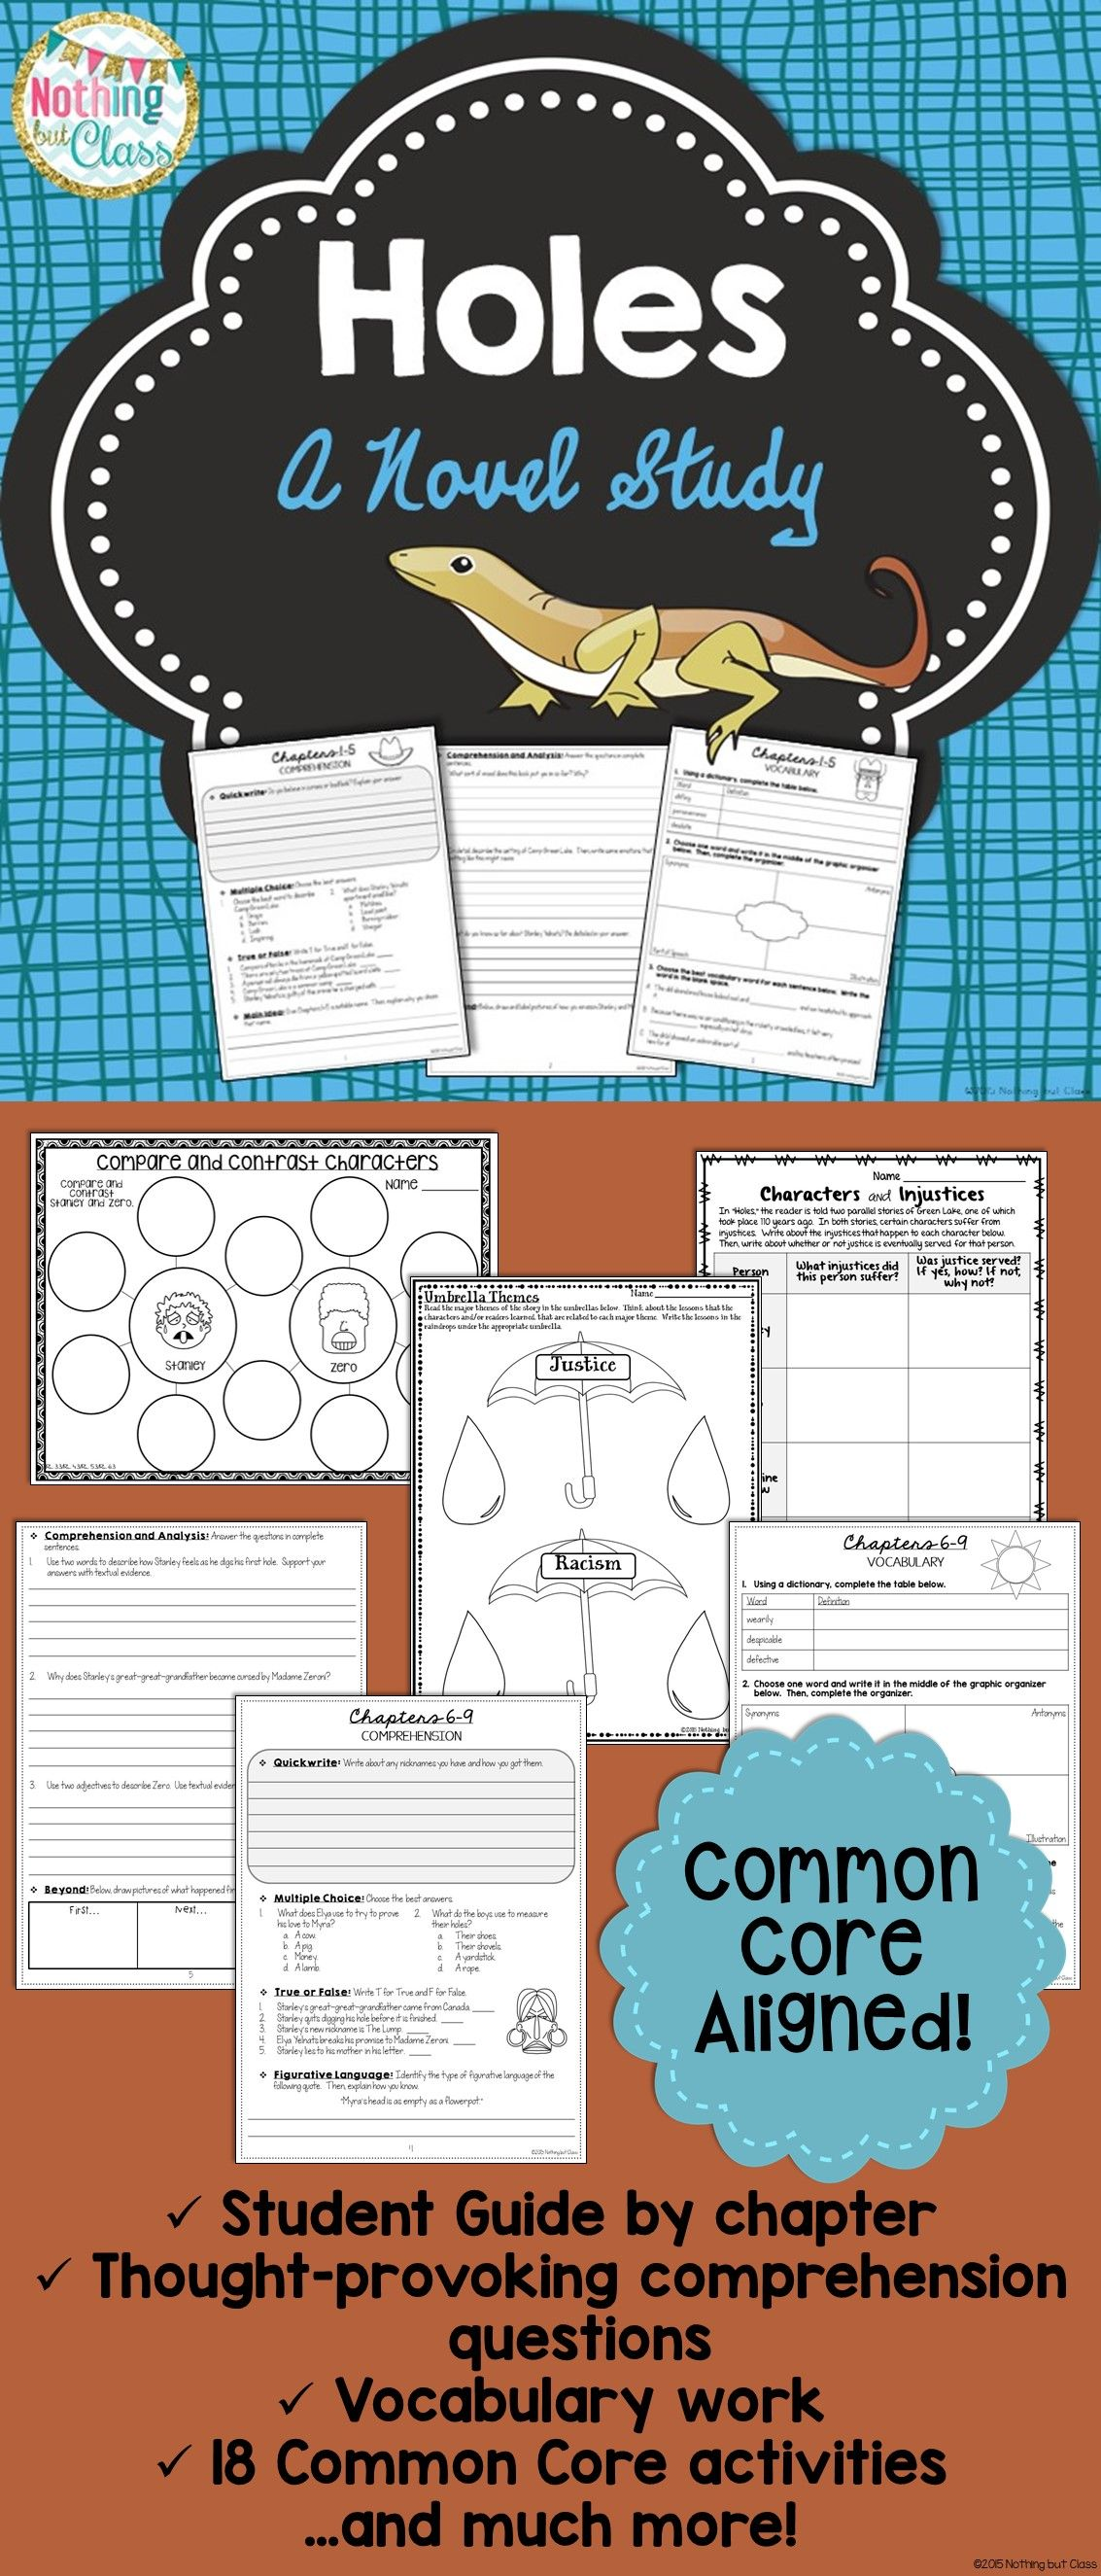 Holes Novel Study Unit Comprehension Vocabulary Activities Tests